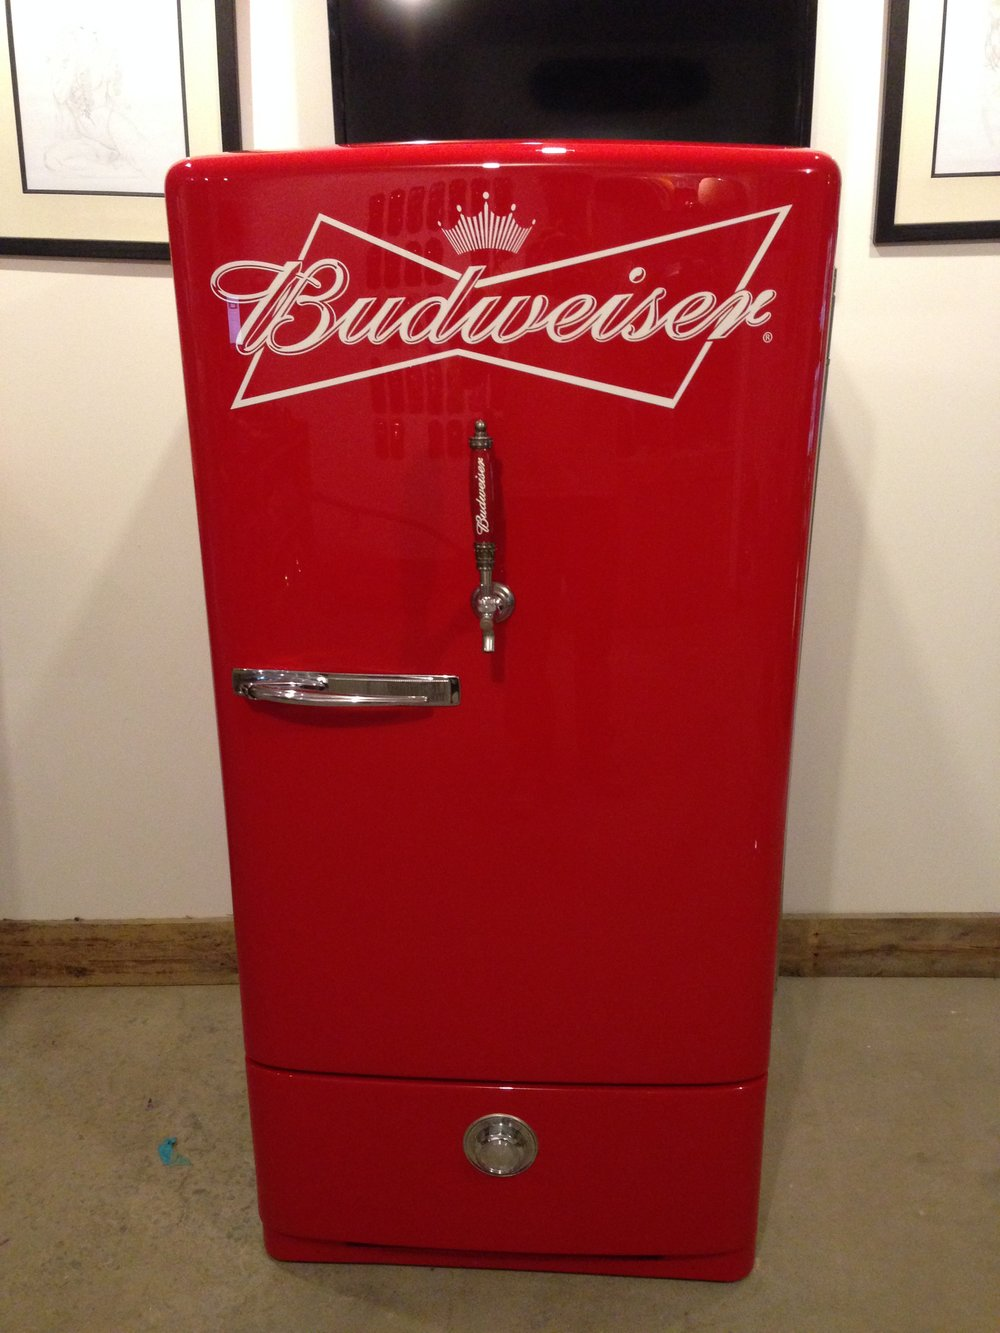 The final product came out to be a beer fridge any bar owner would be proud to call theirs.